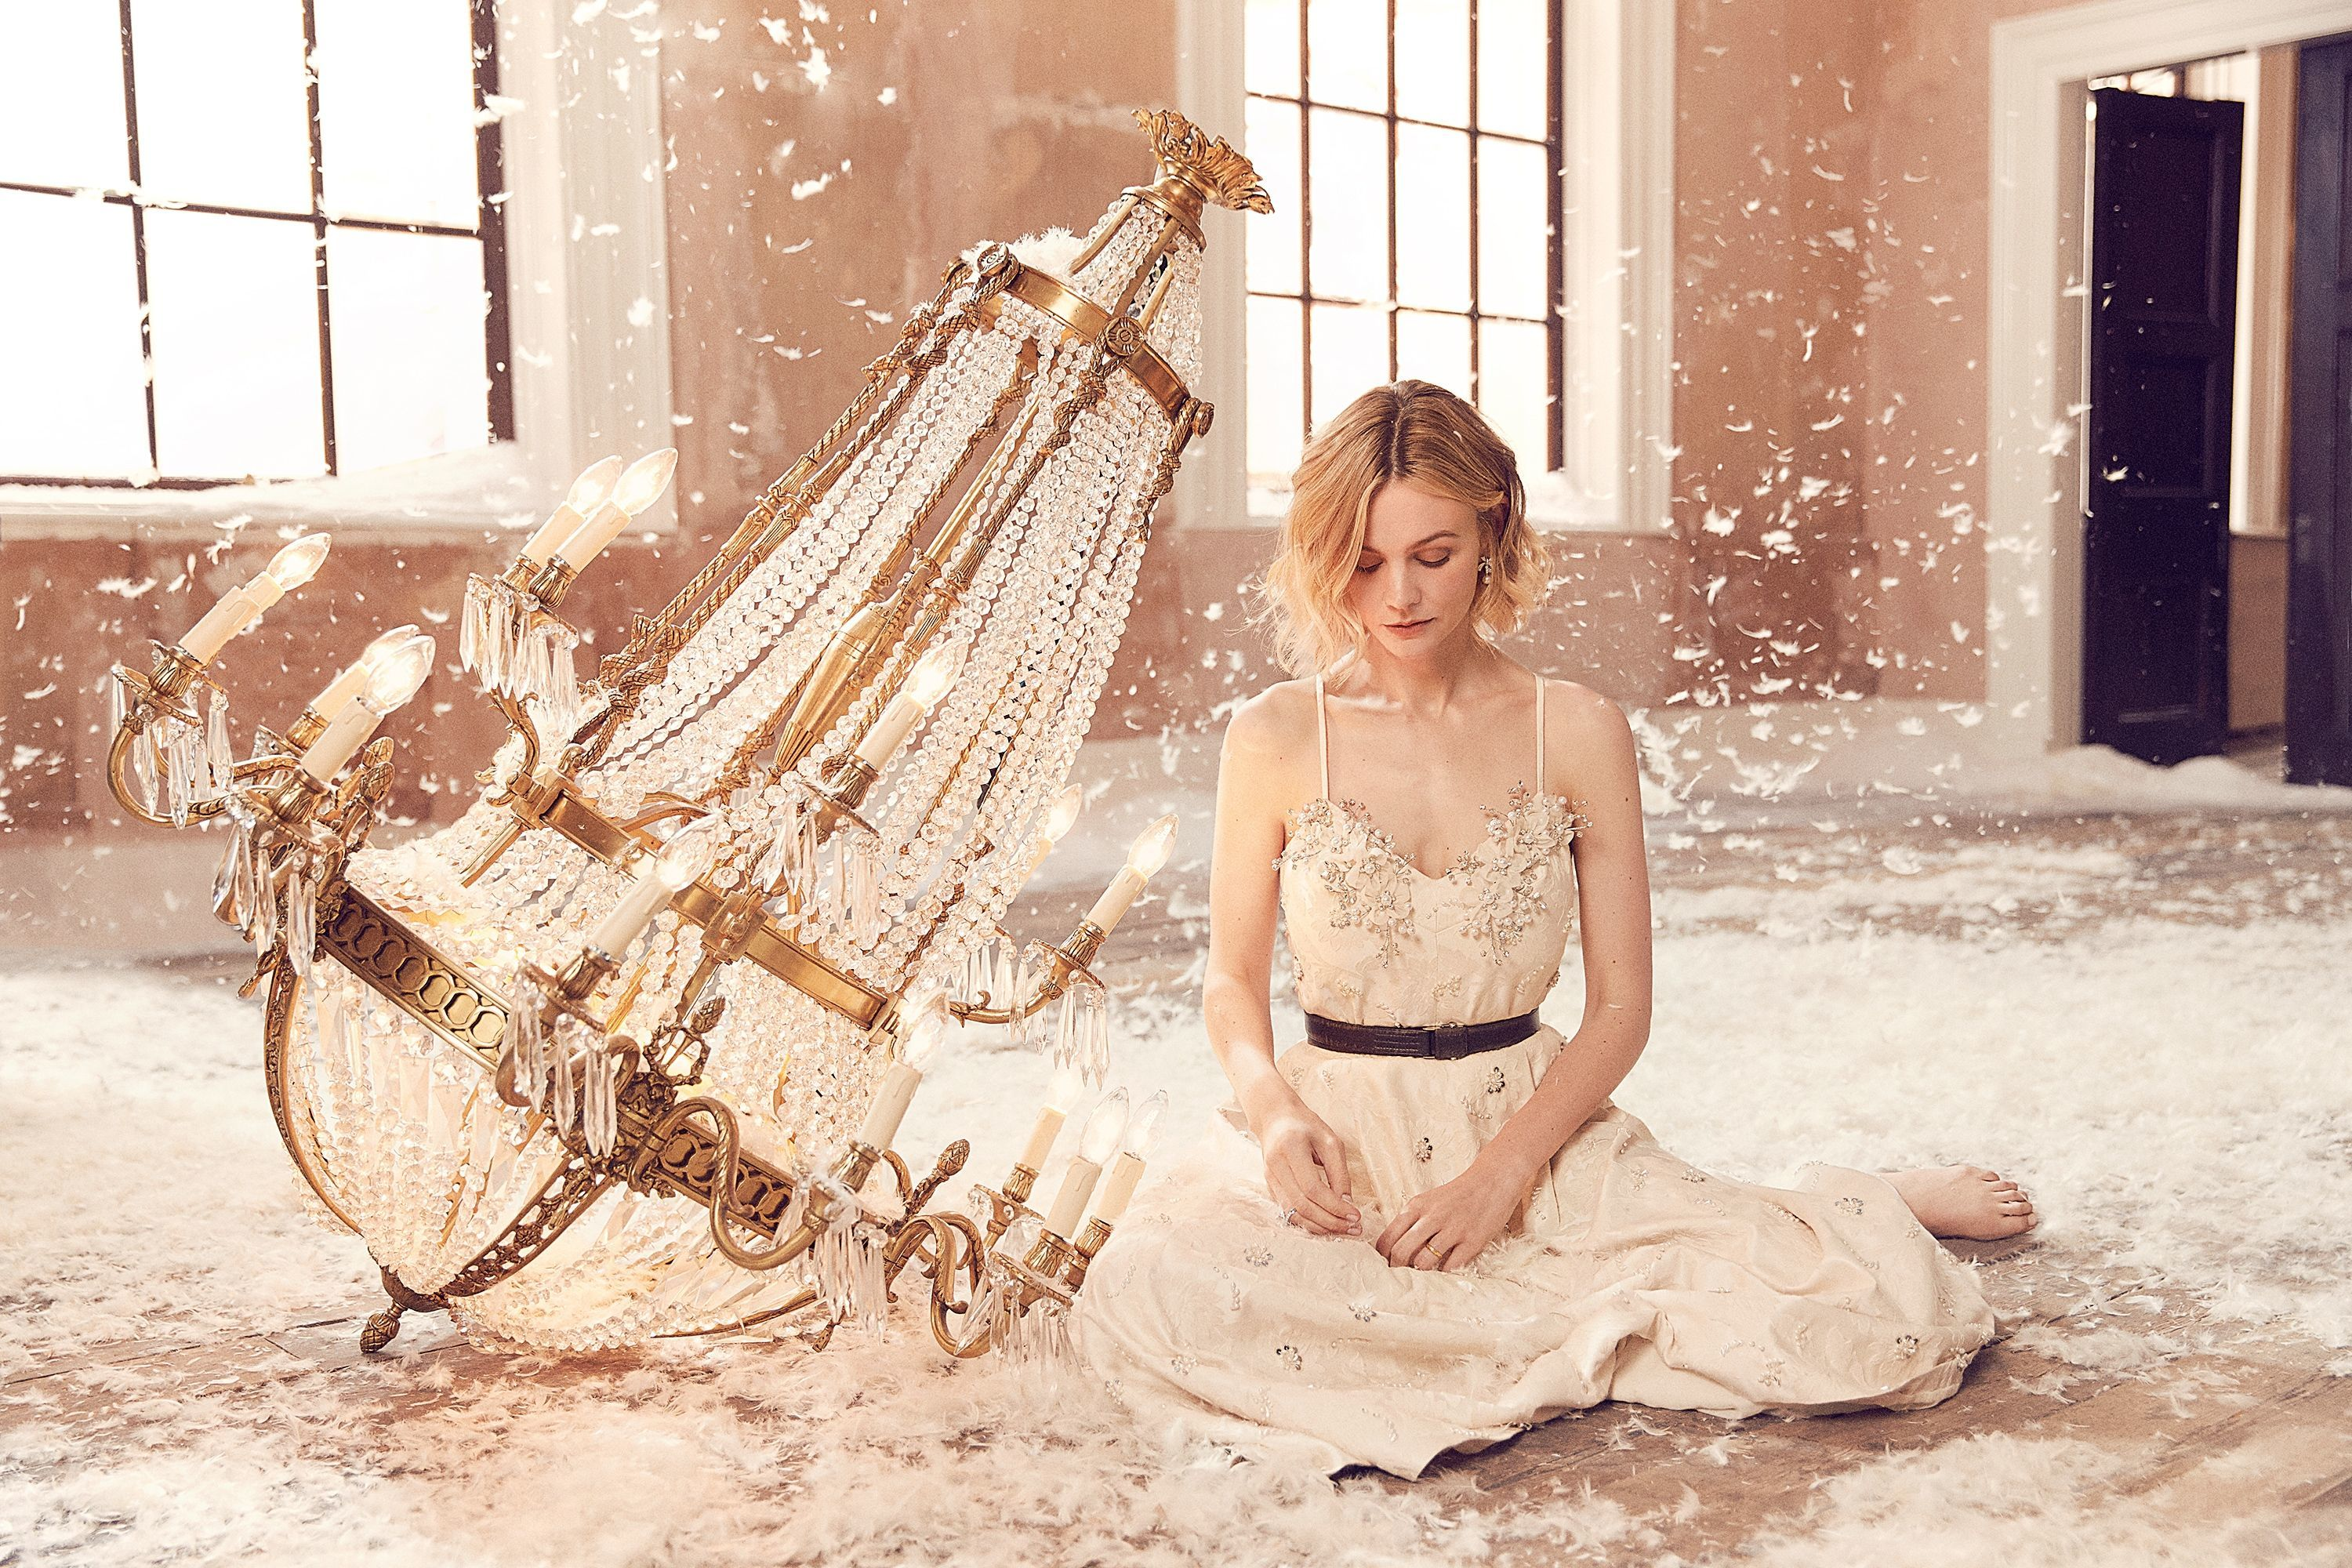 Carey Mulligan on Photoshoot